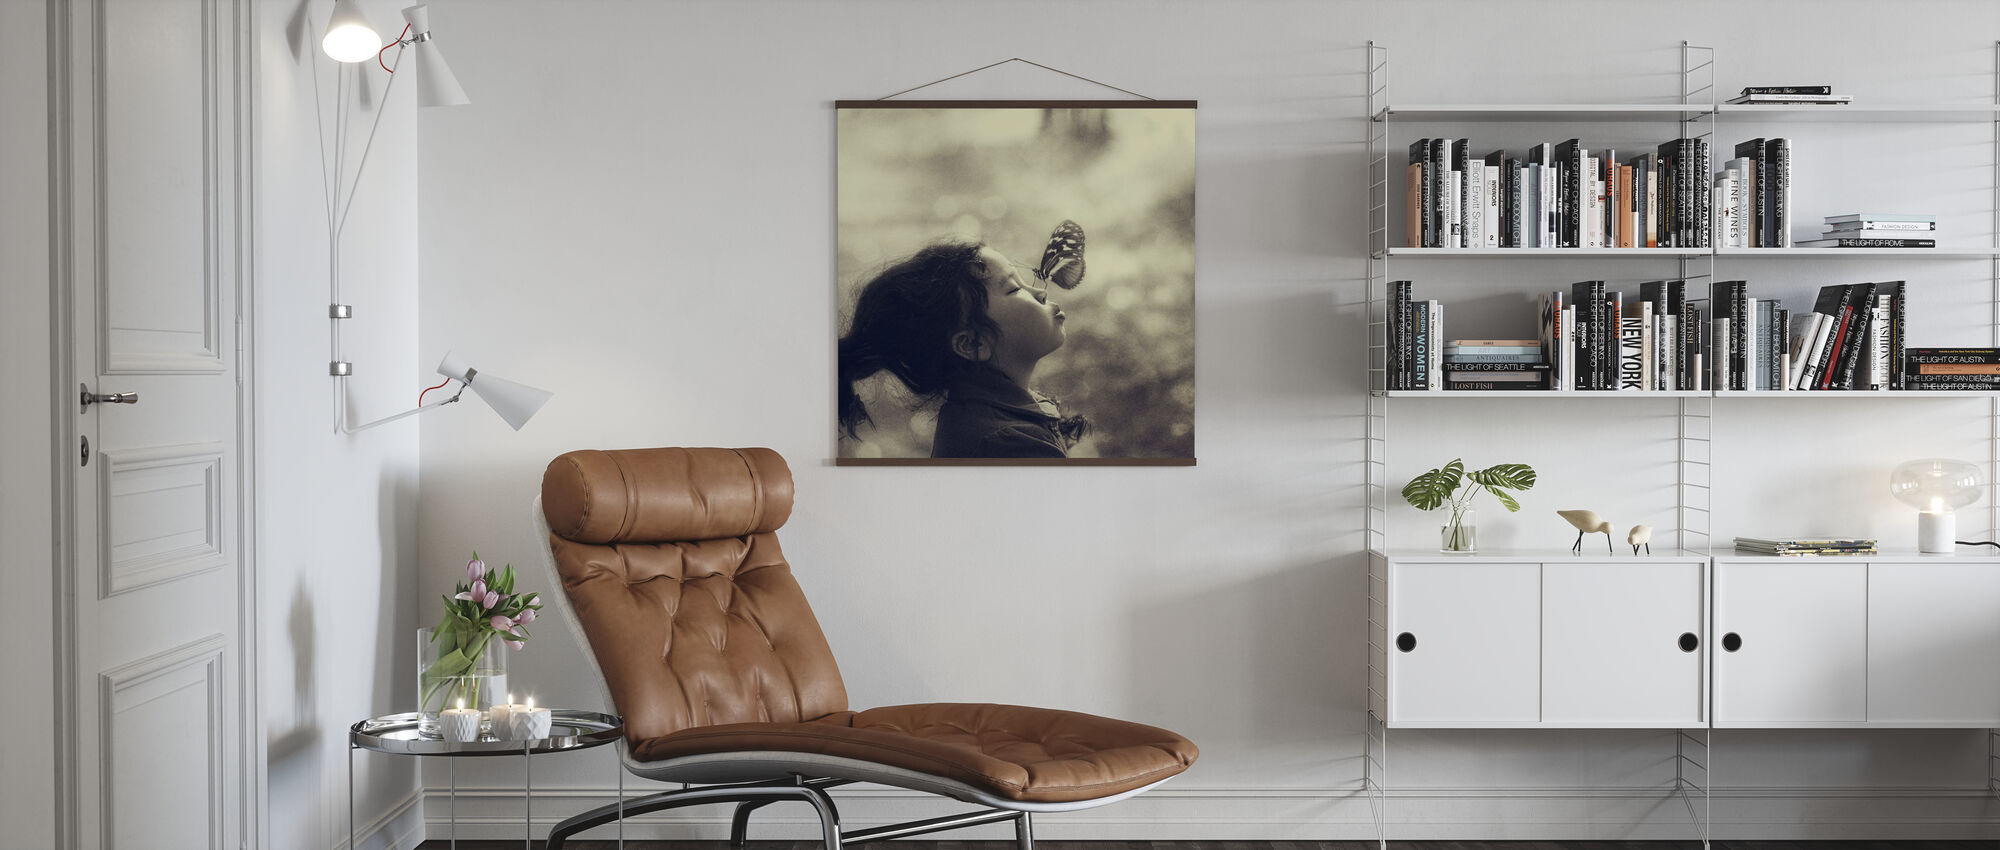 New Friend - Poster - Living Room